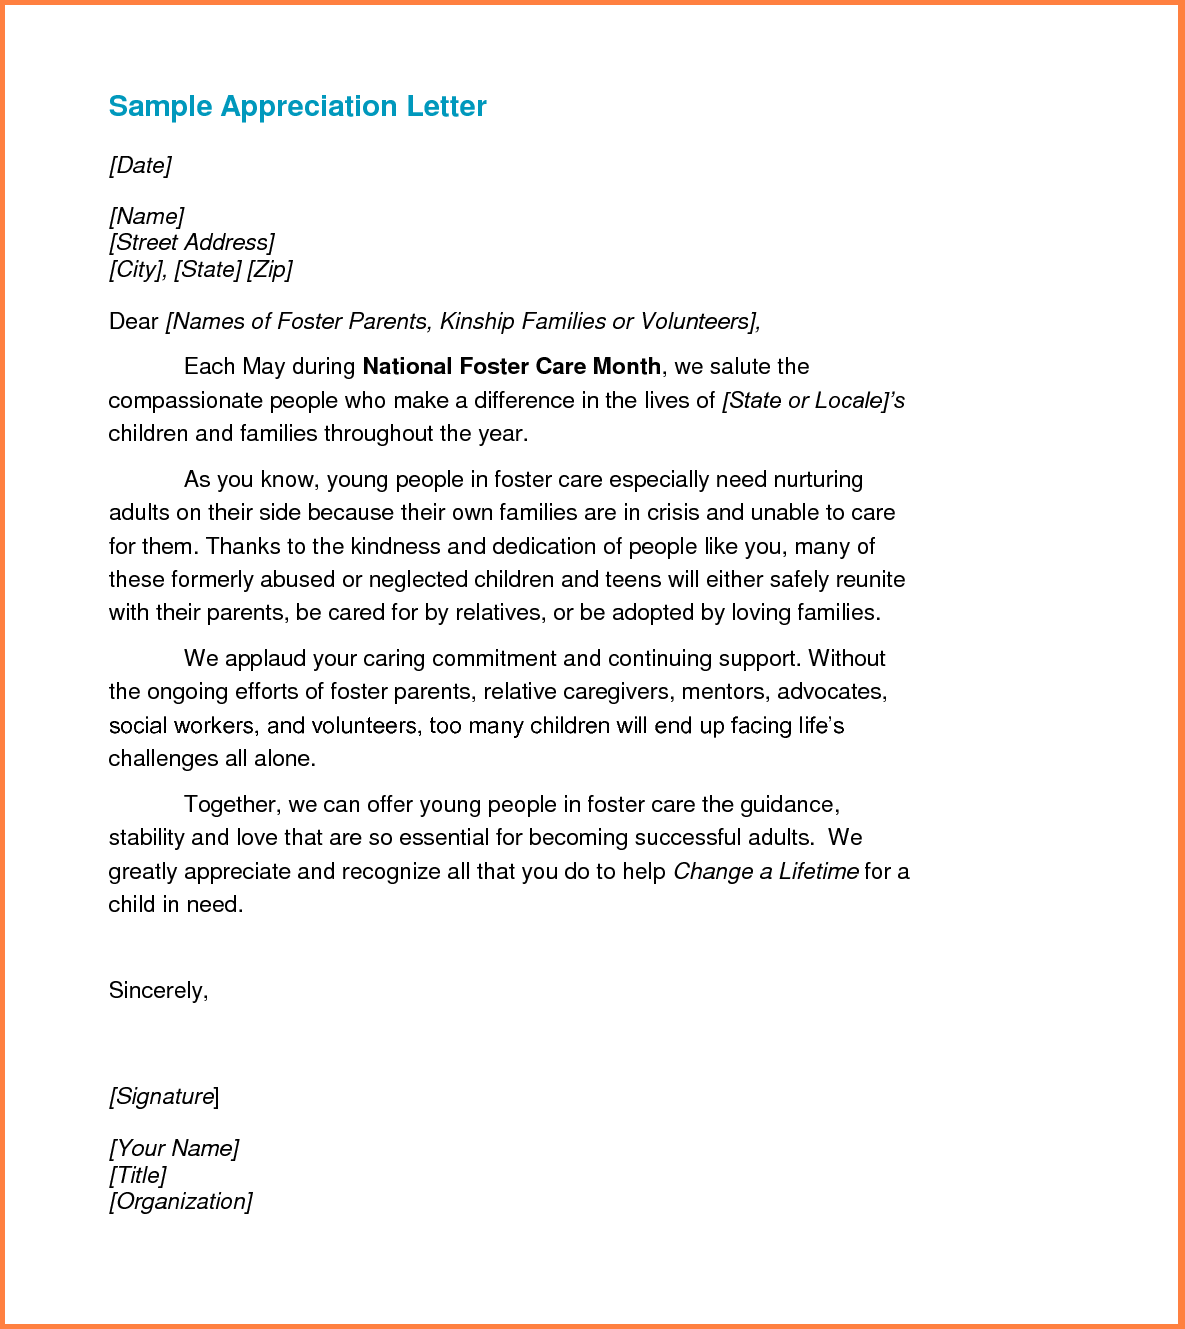 Letter of appreciation sample sample thank you letters to clients for their business popular thecheapjerseys